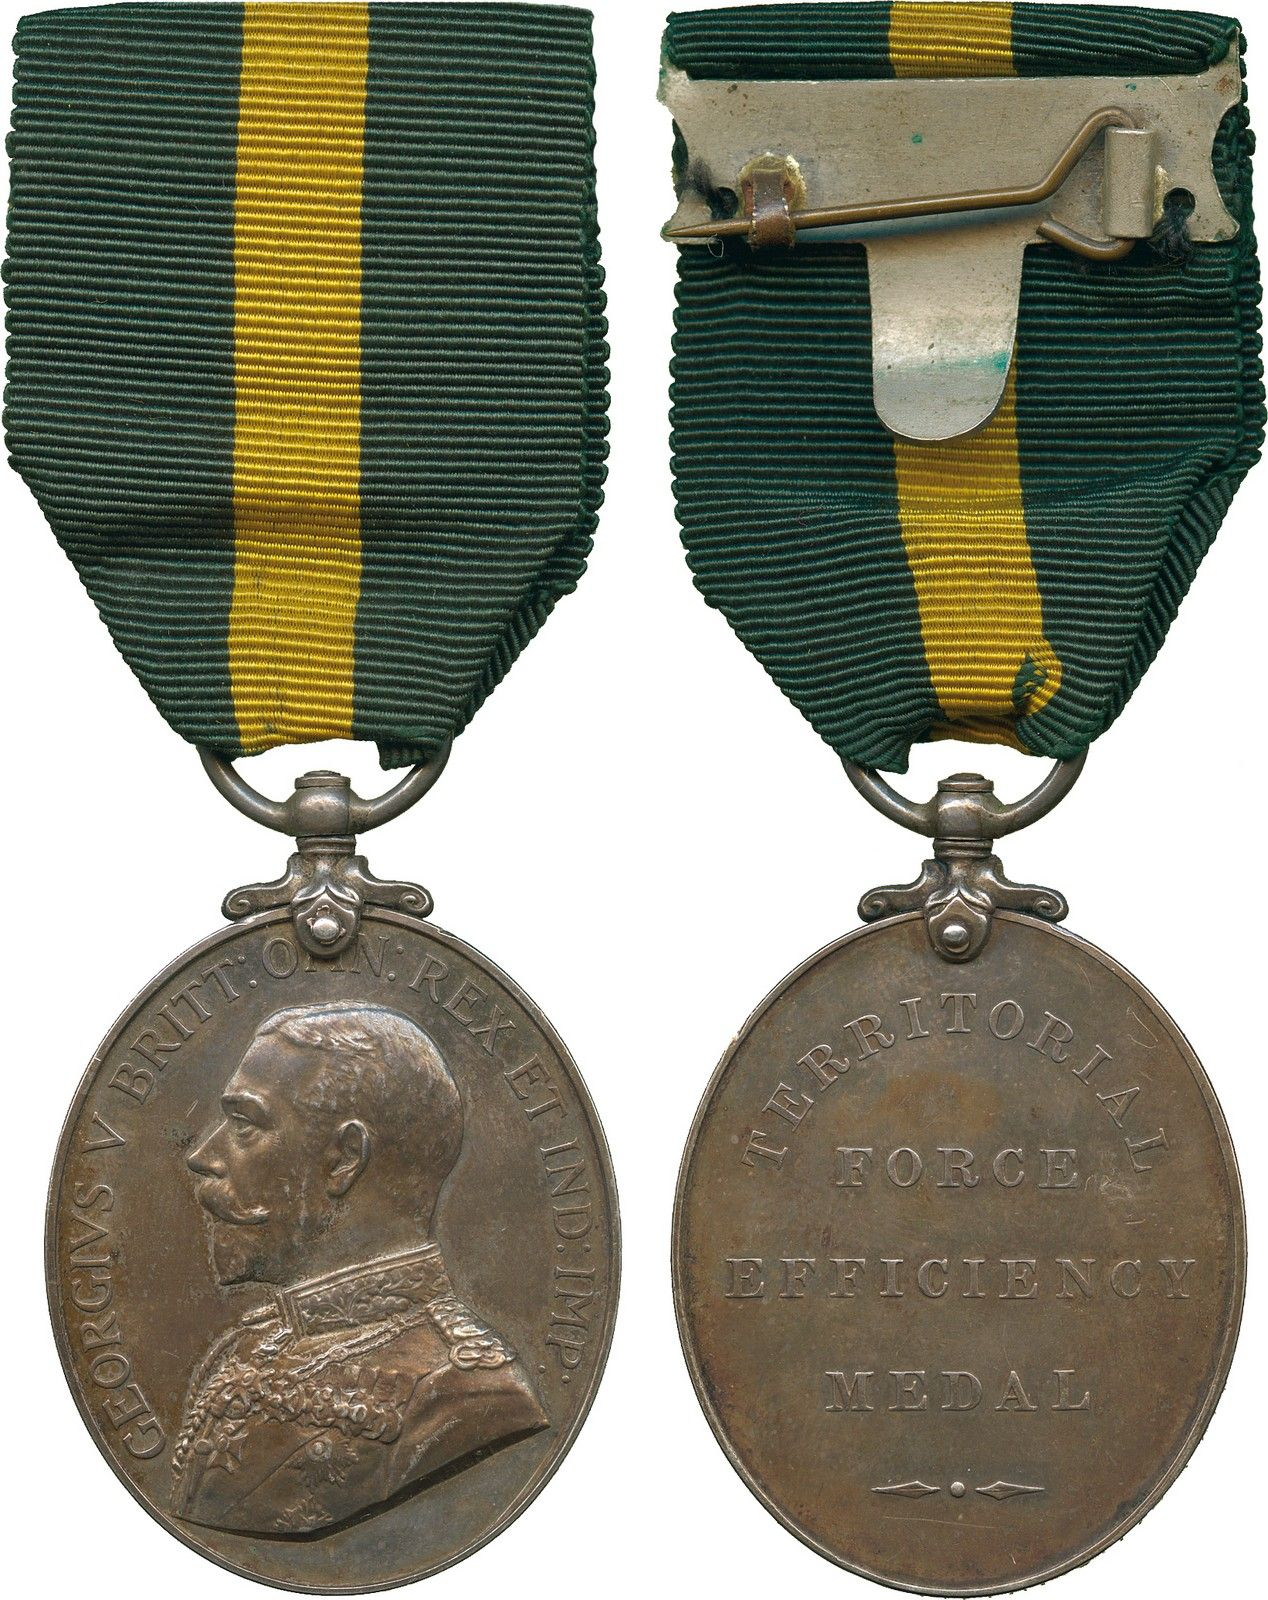 Lot 272 Military Medals Single Decorations And Medals Awarded